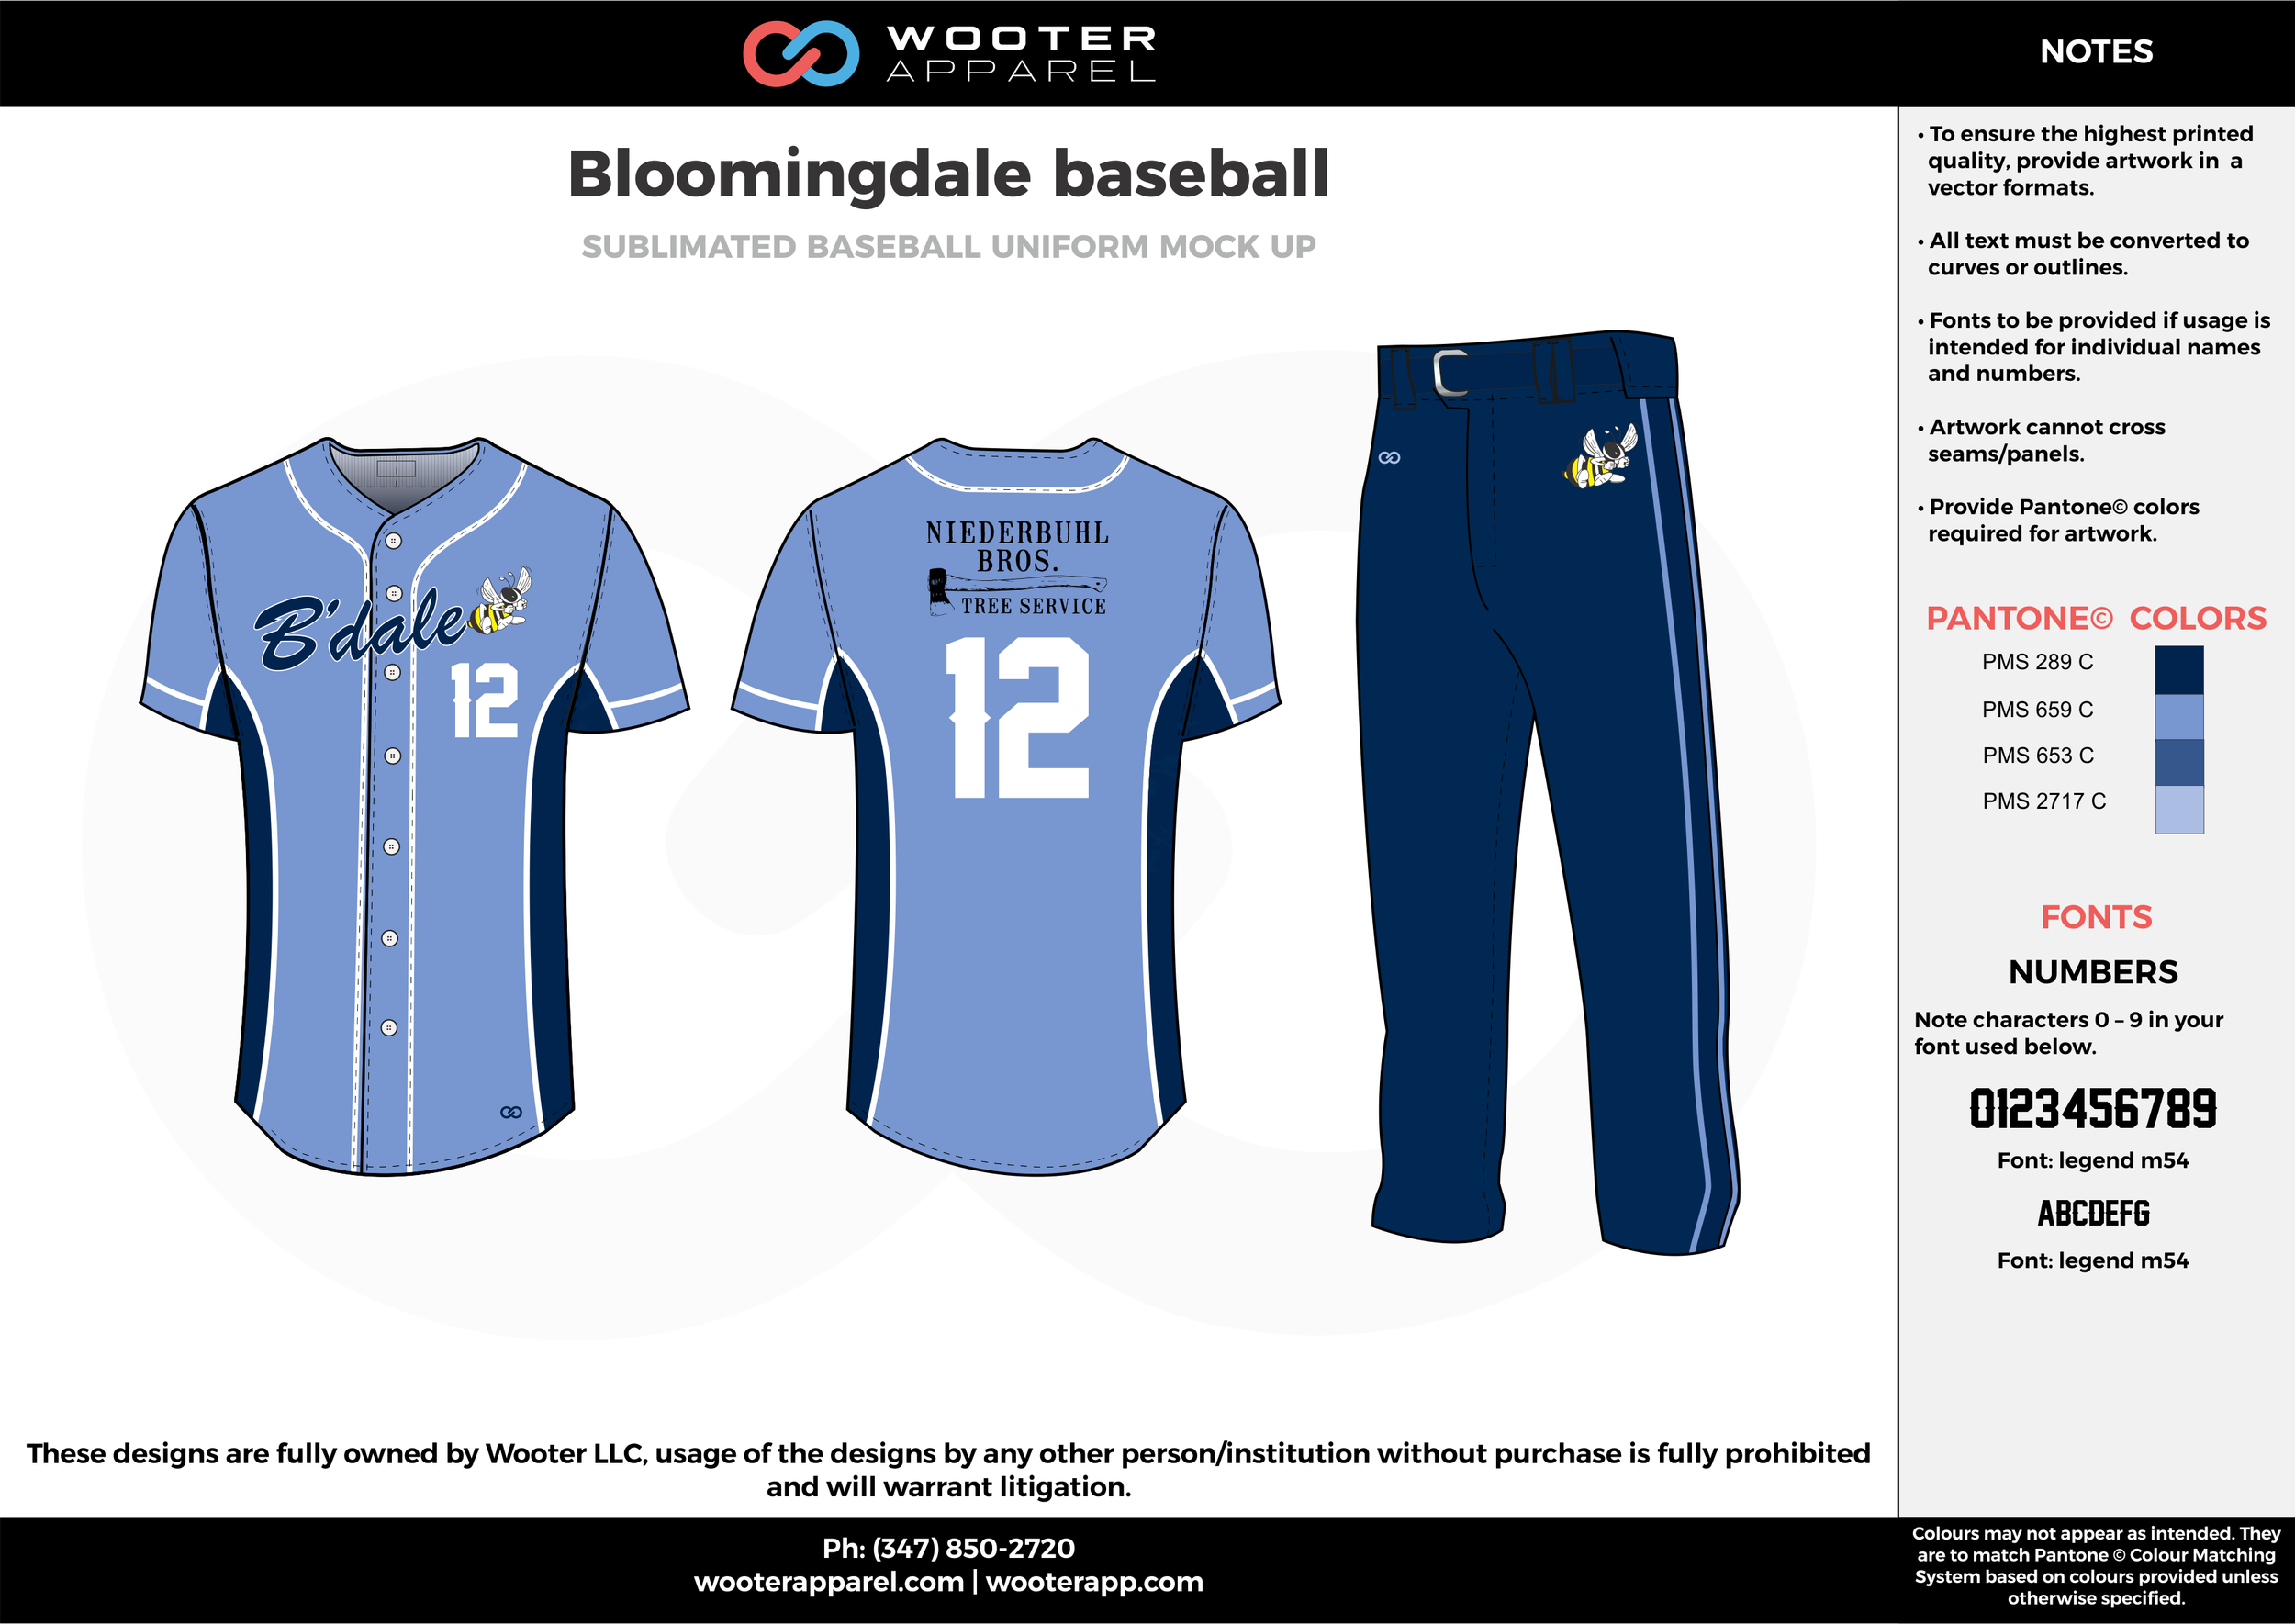 BLOOMINGDALE BASEBALL blue black white baseball uniforms jerseys pants